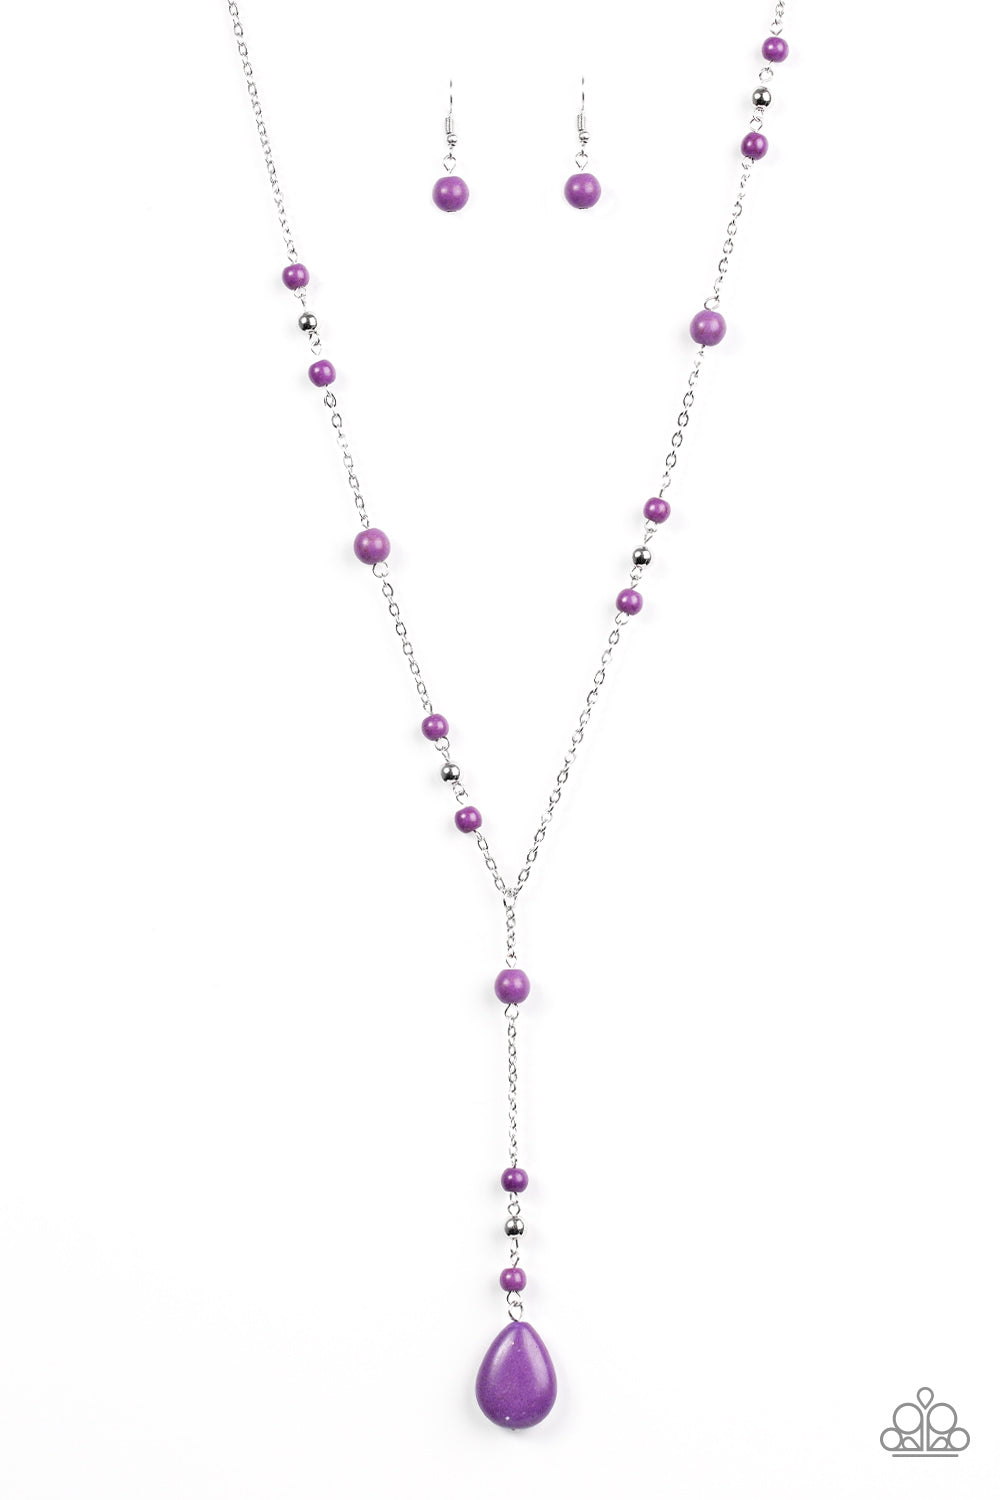 crystal tomtosh product necklace hexagonal fluorescent leather purple chain stone natural pendant